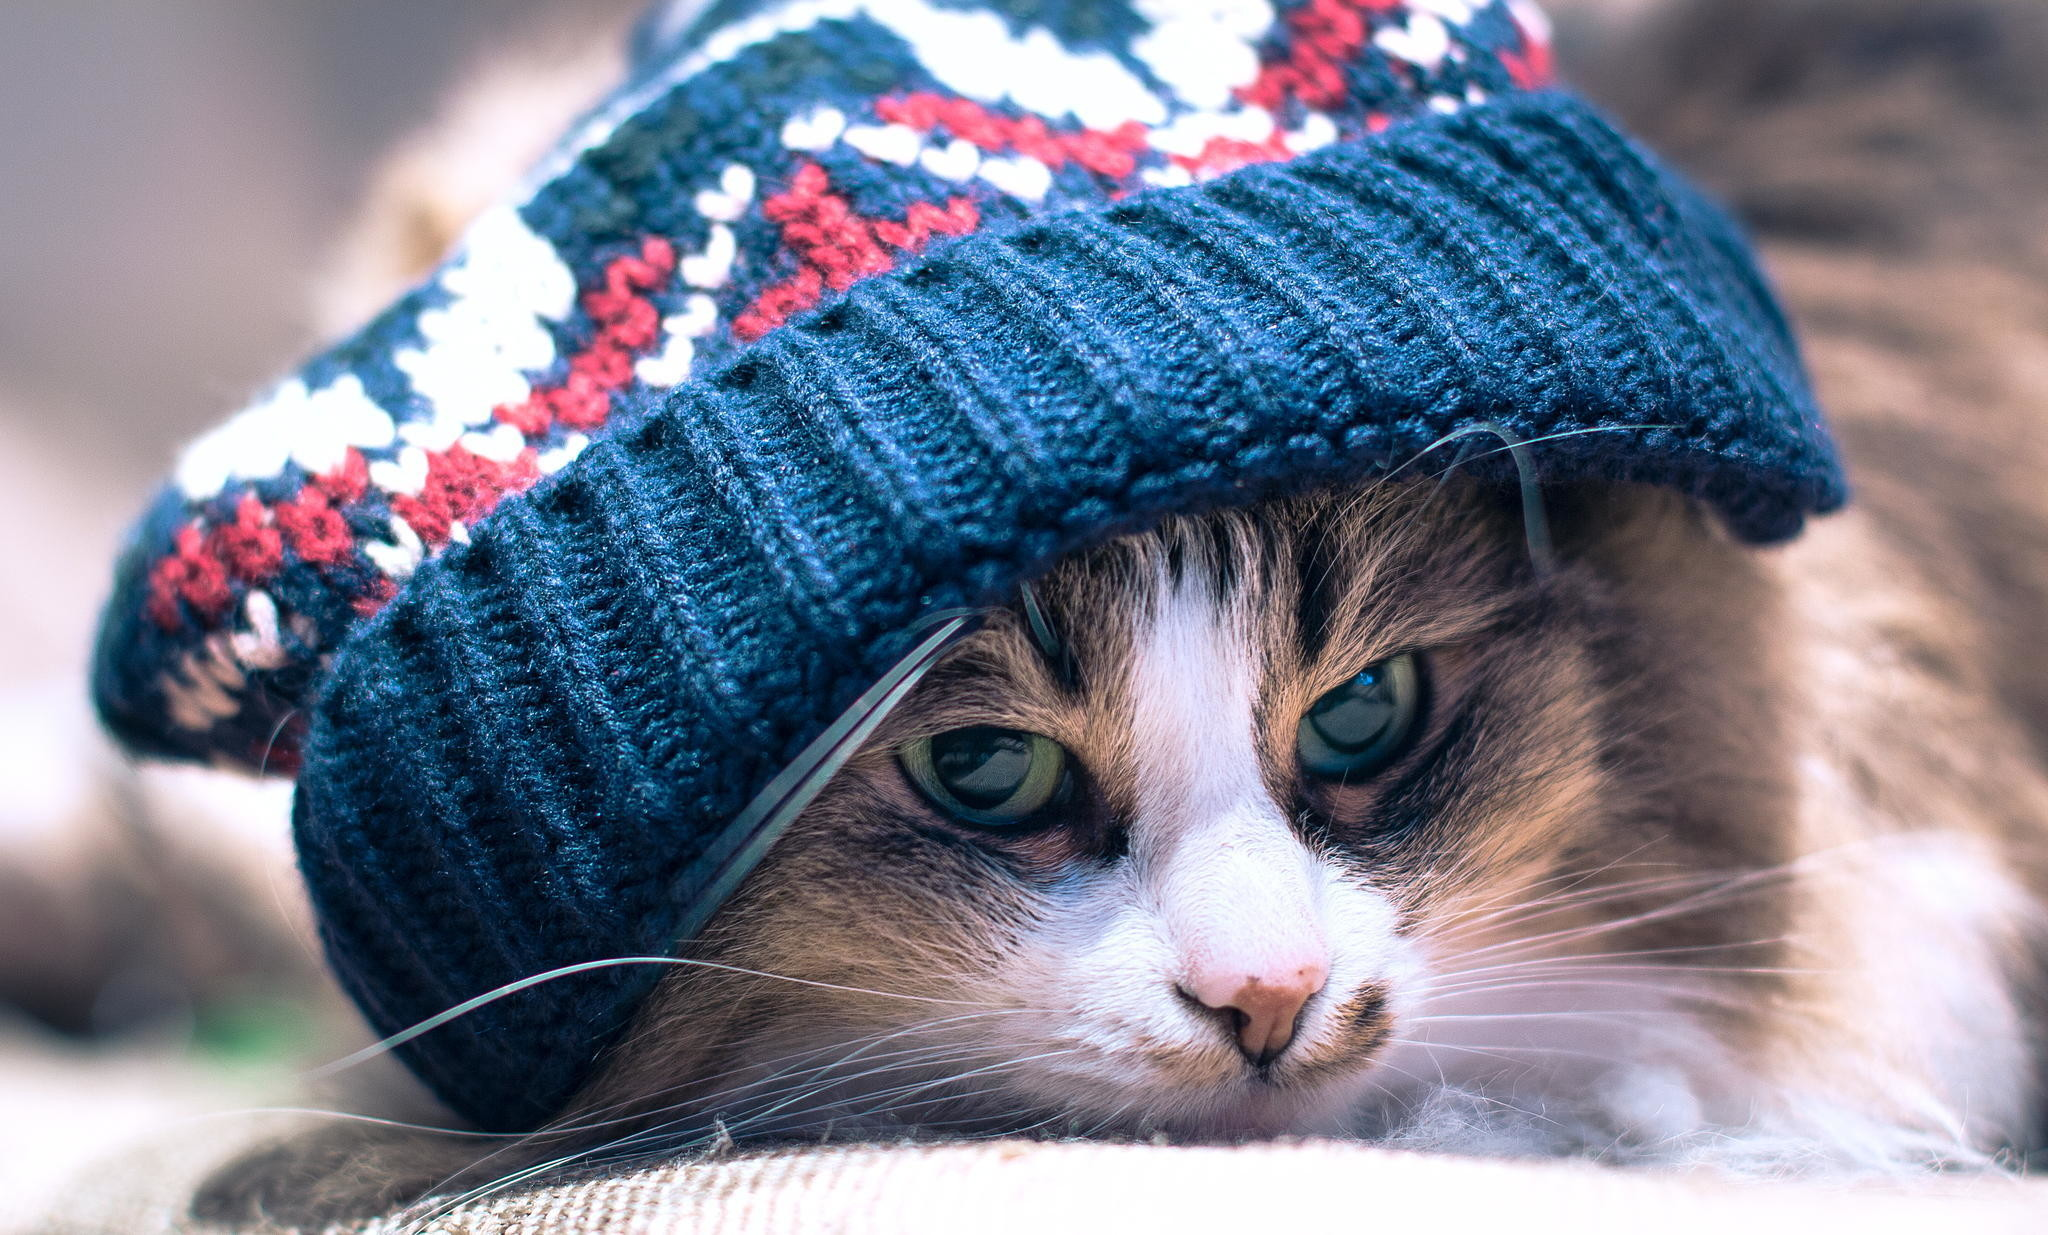 Cool Green Eyed Calico Color Cat Wearing Blue Wool Hat HD wallpaper for free